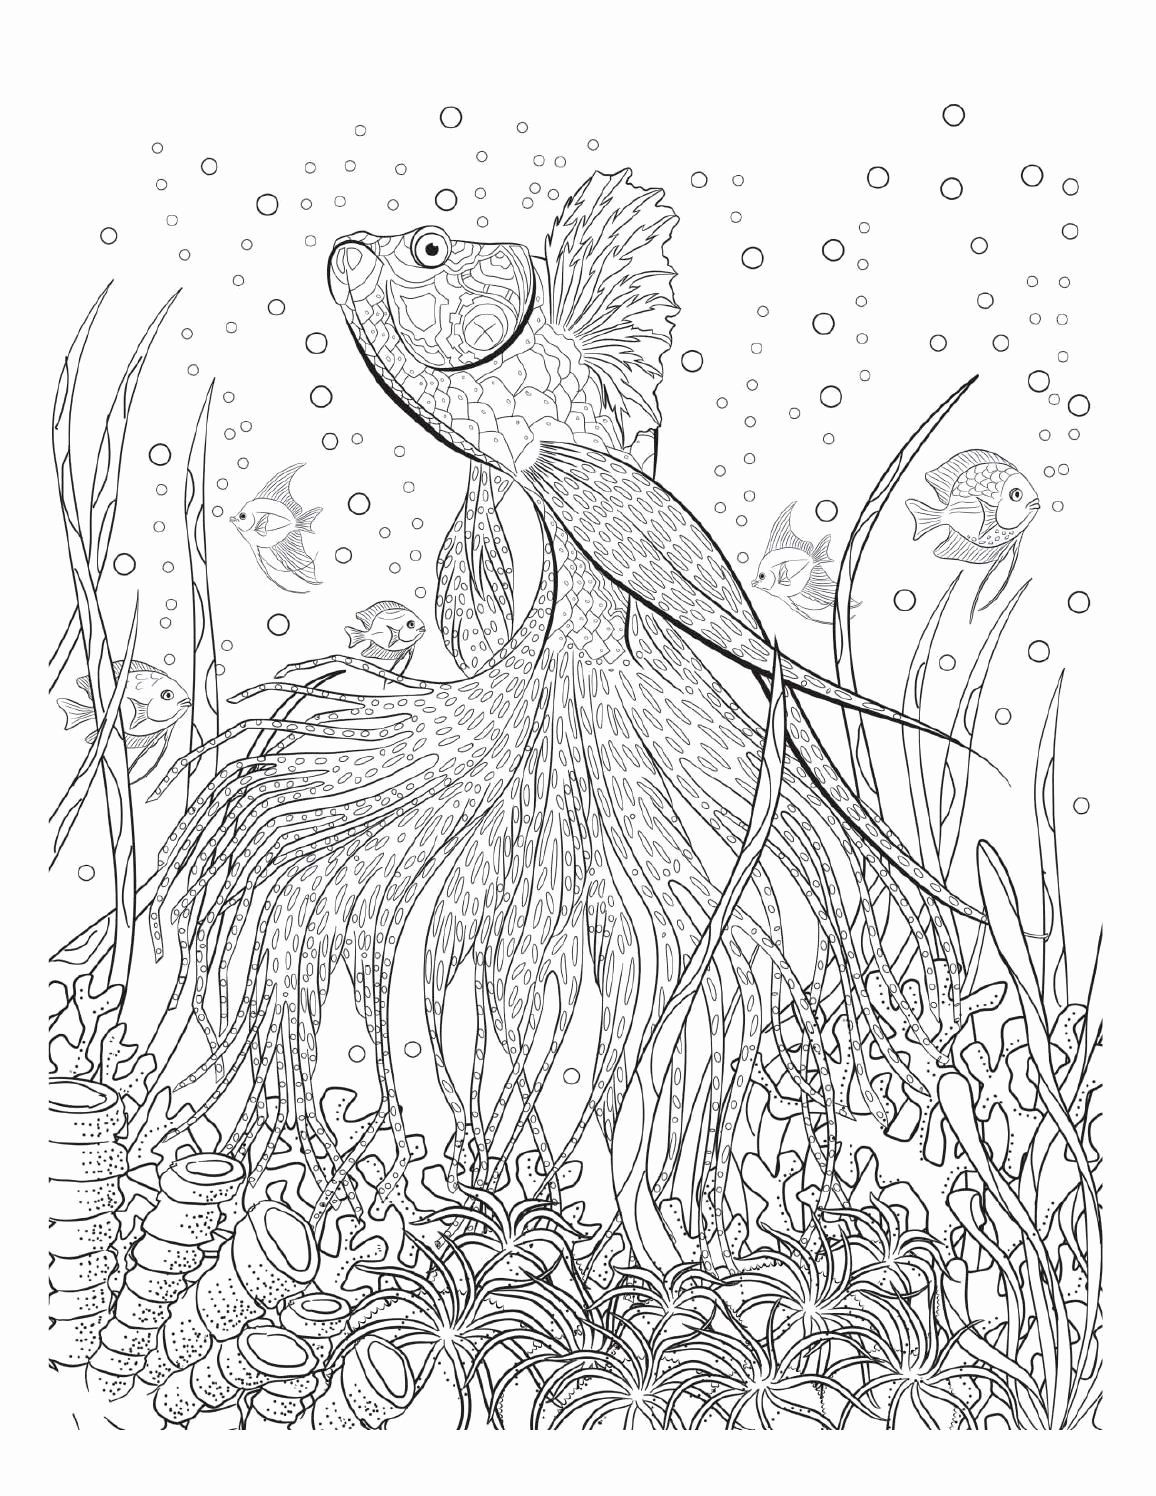 Interactive Coloring Pages For Adults Elegant Page Coloring Page Coloring Animal Pages Forlts To Pr In 2020 Detailed Coloring Pages Coloring Books Adult Coloring Pages